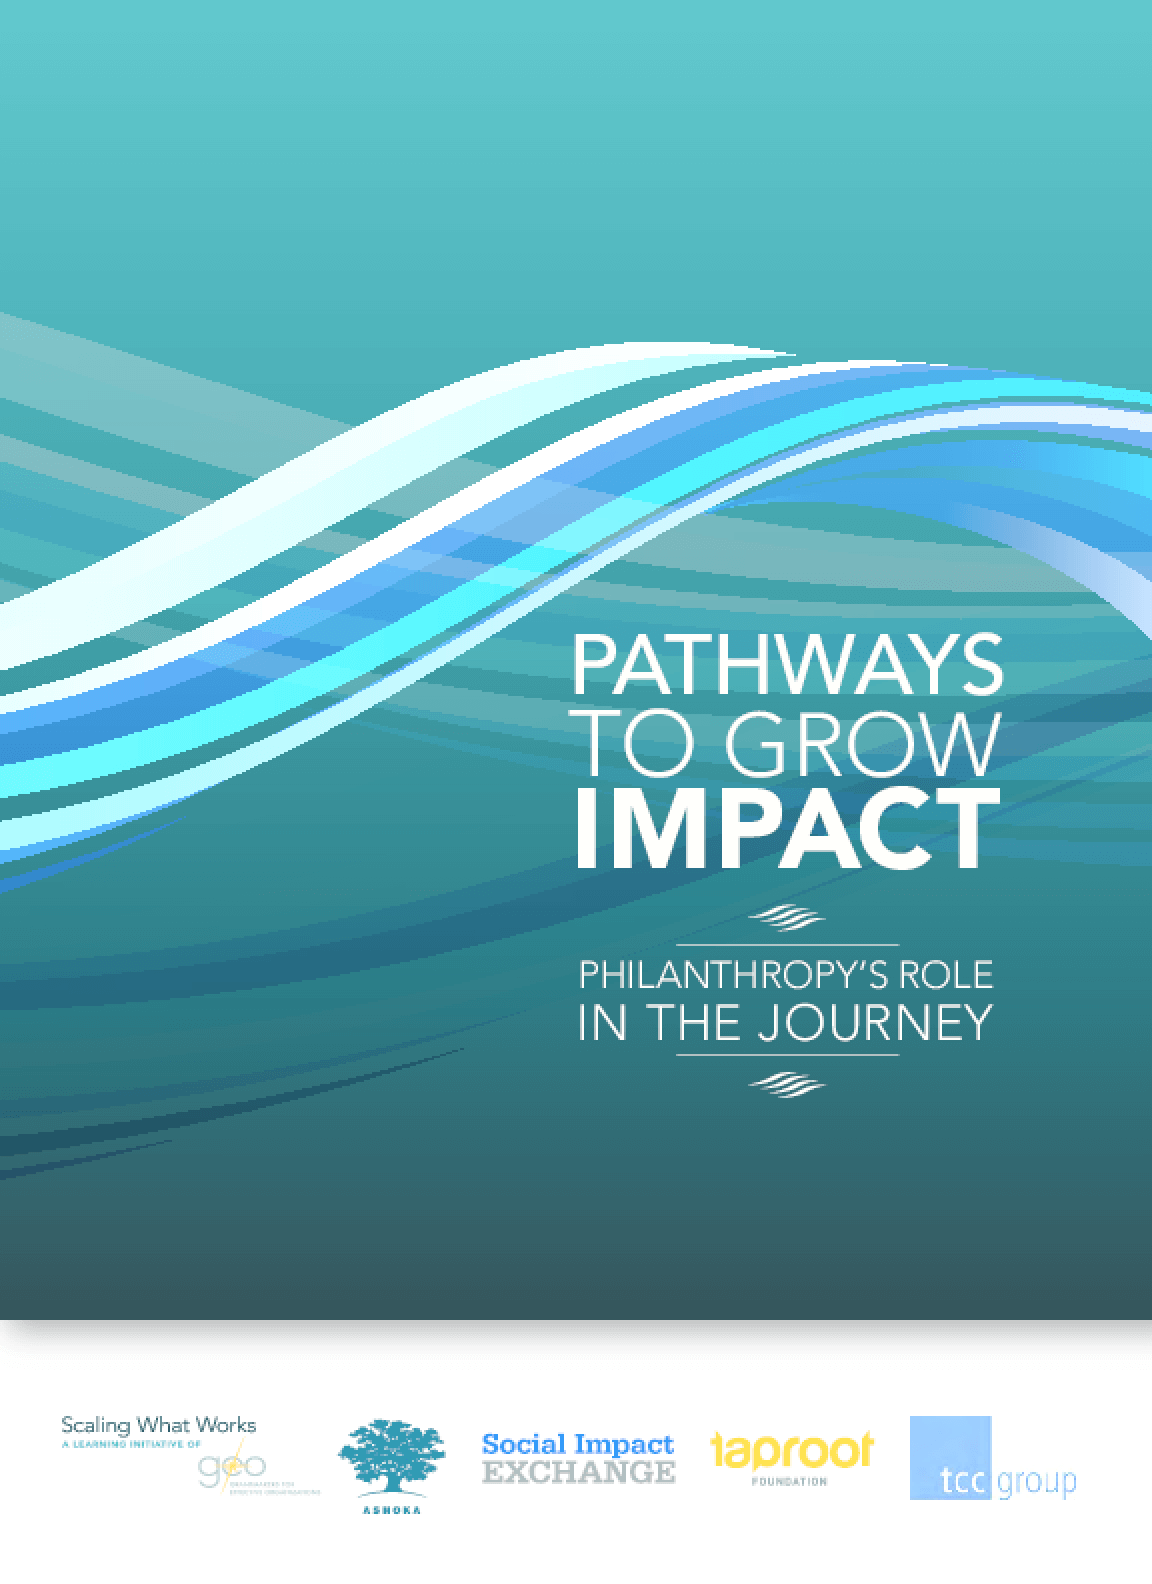 Pathways to Grow Impact: Philanthropy's Role in the Journey